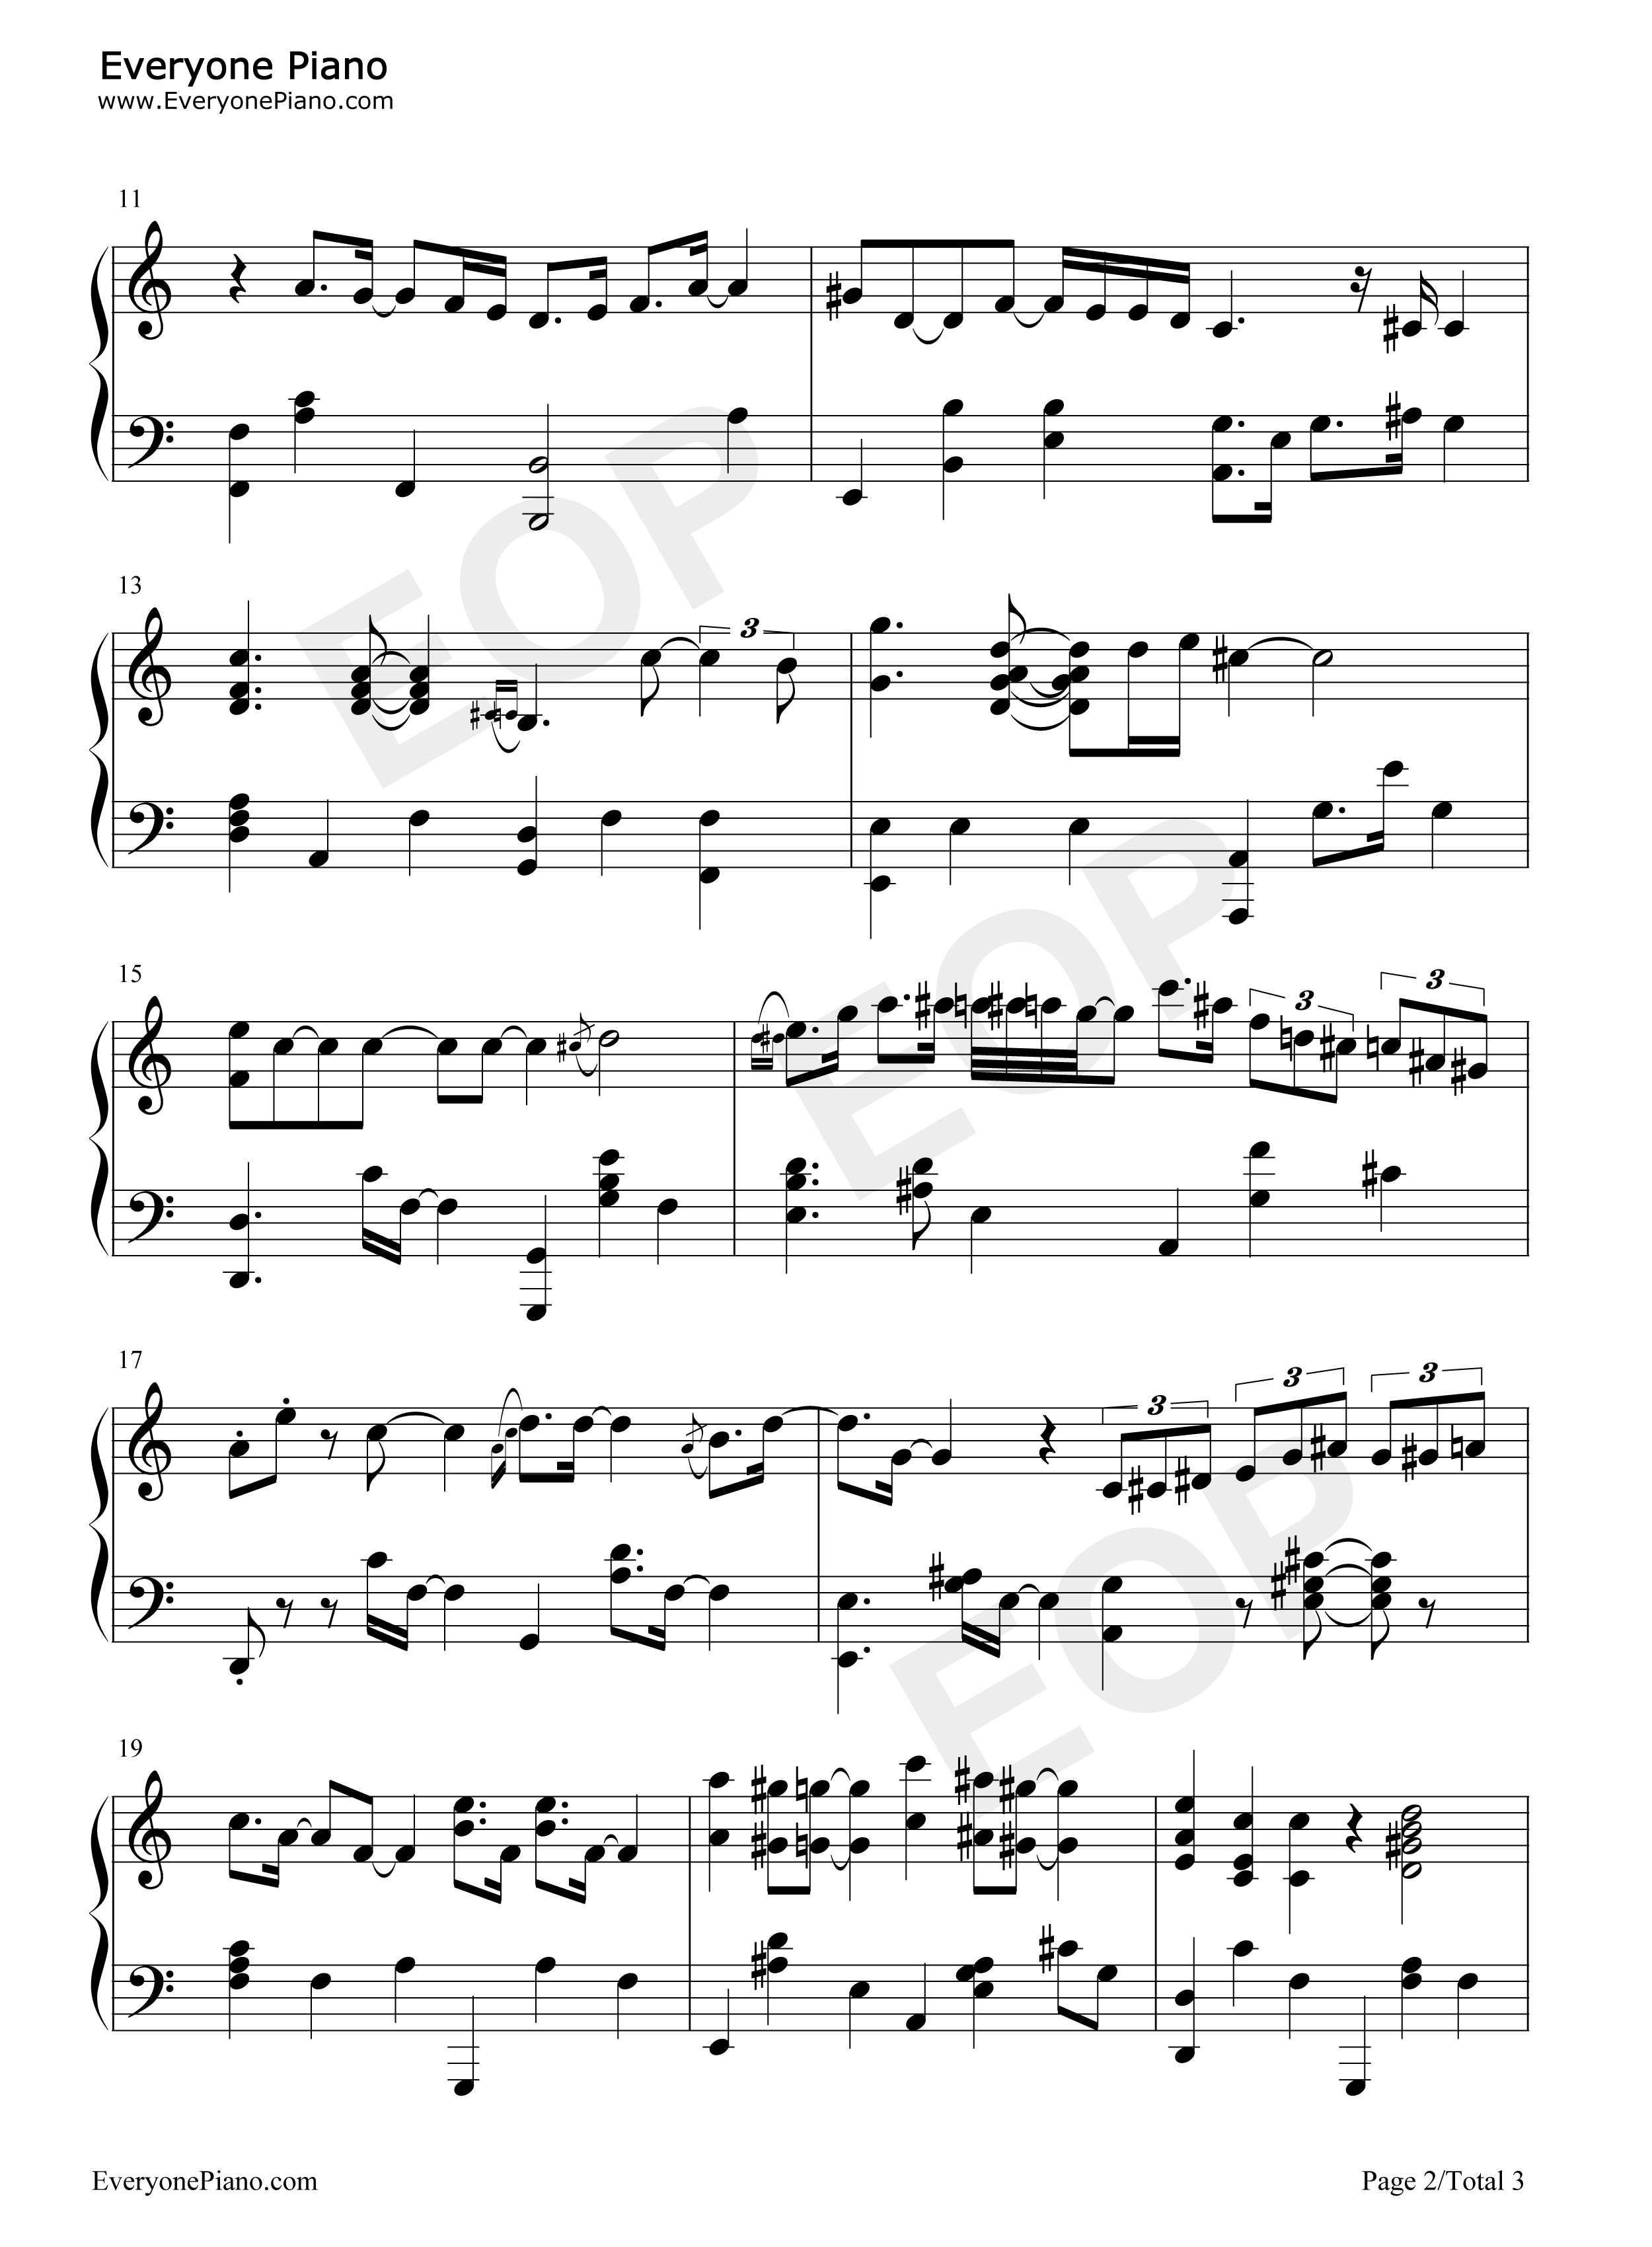 Fly me to the moon bart howard stave preview 2 free piano sheet listen now print sheet fly me to the moon bart howard stave preview 2 hexwebz Choice Image